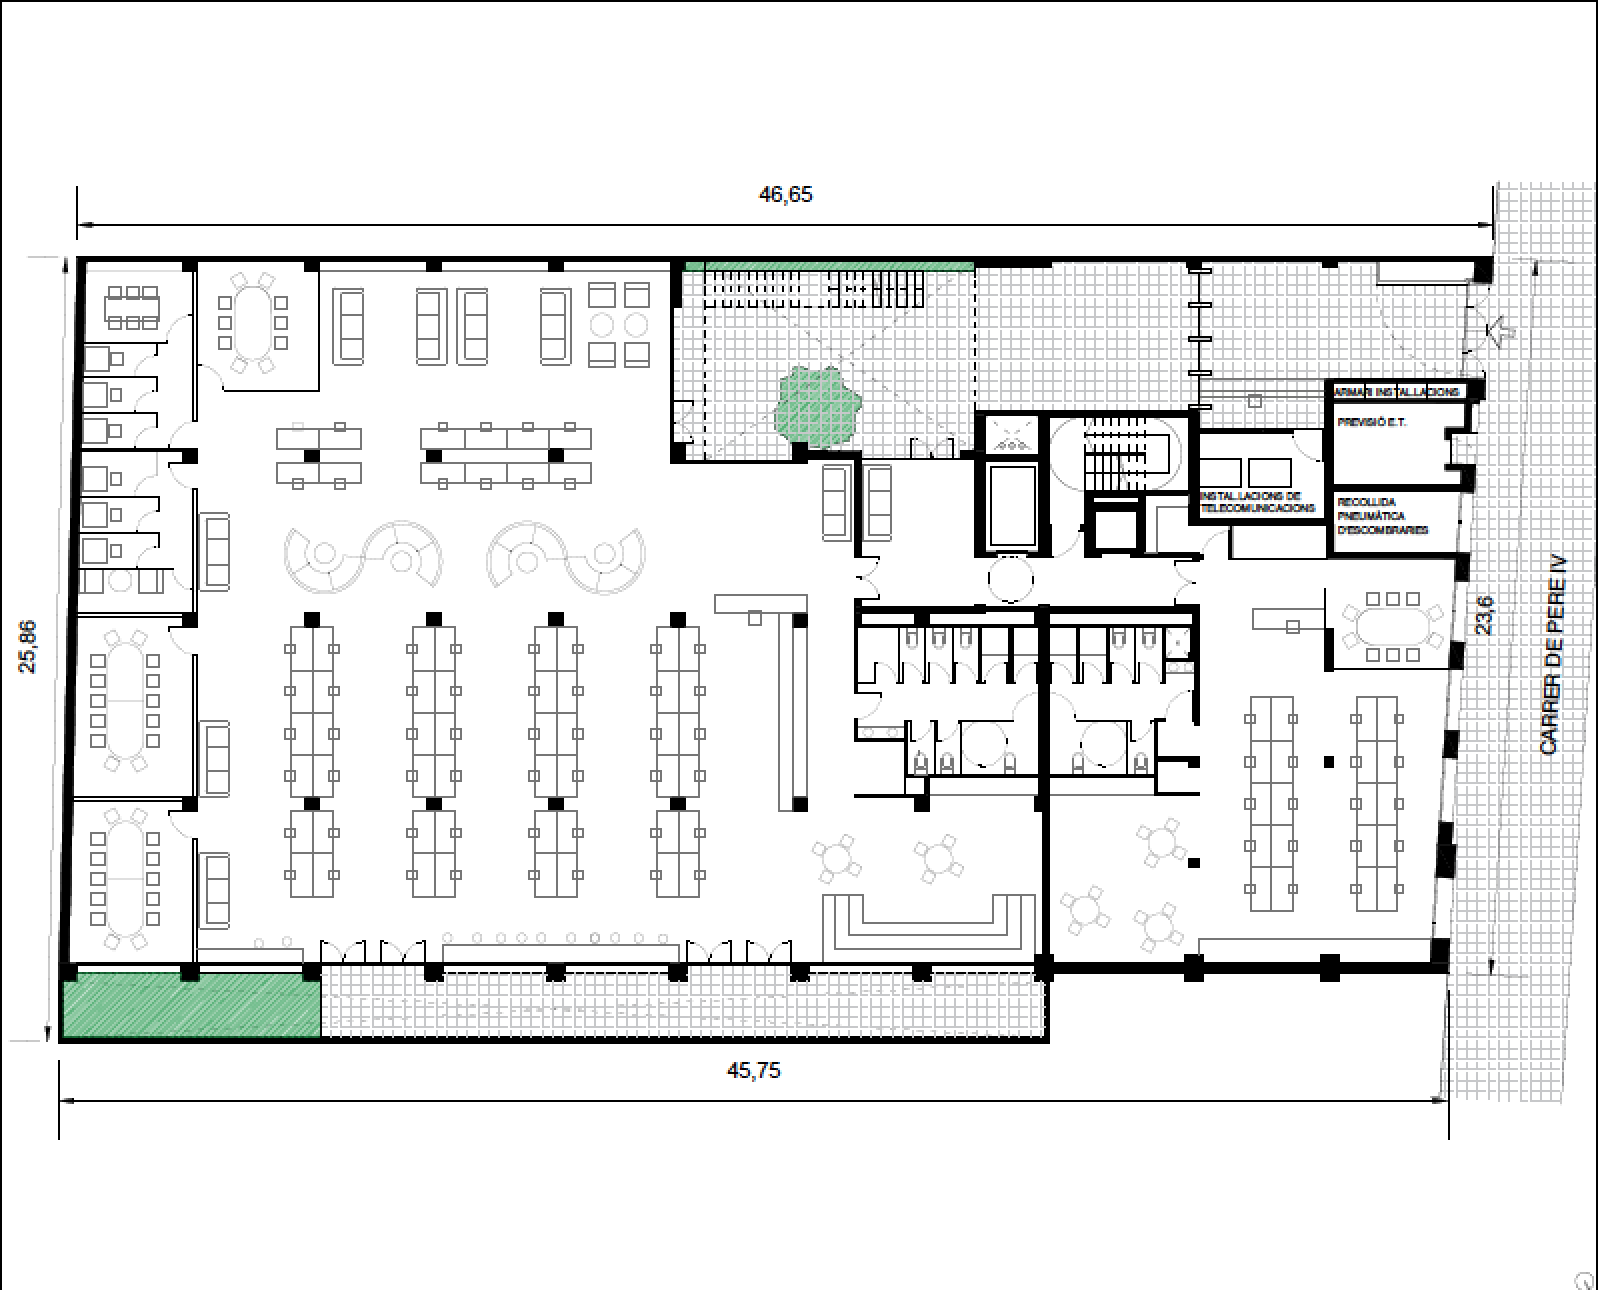 Multi tenantLow density - Approx 290 workstations(Max building occupancy 710 people)